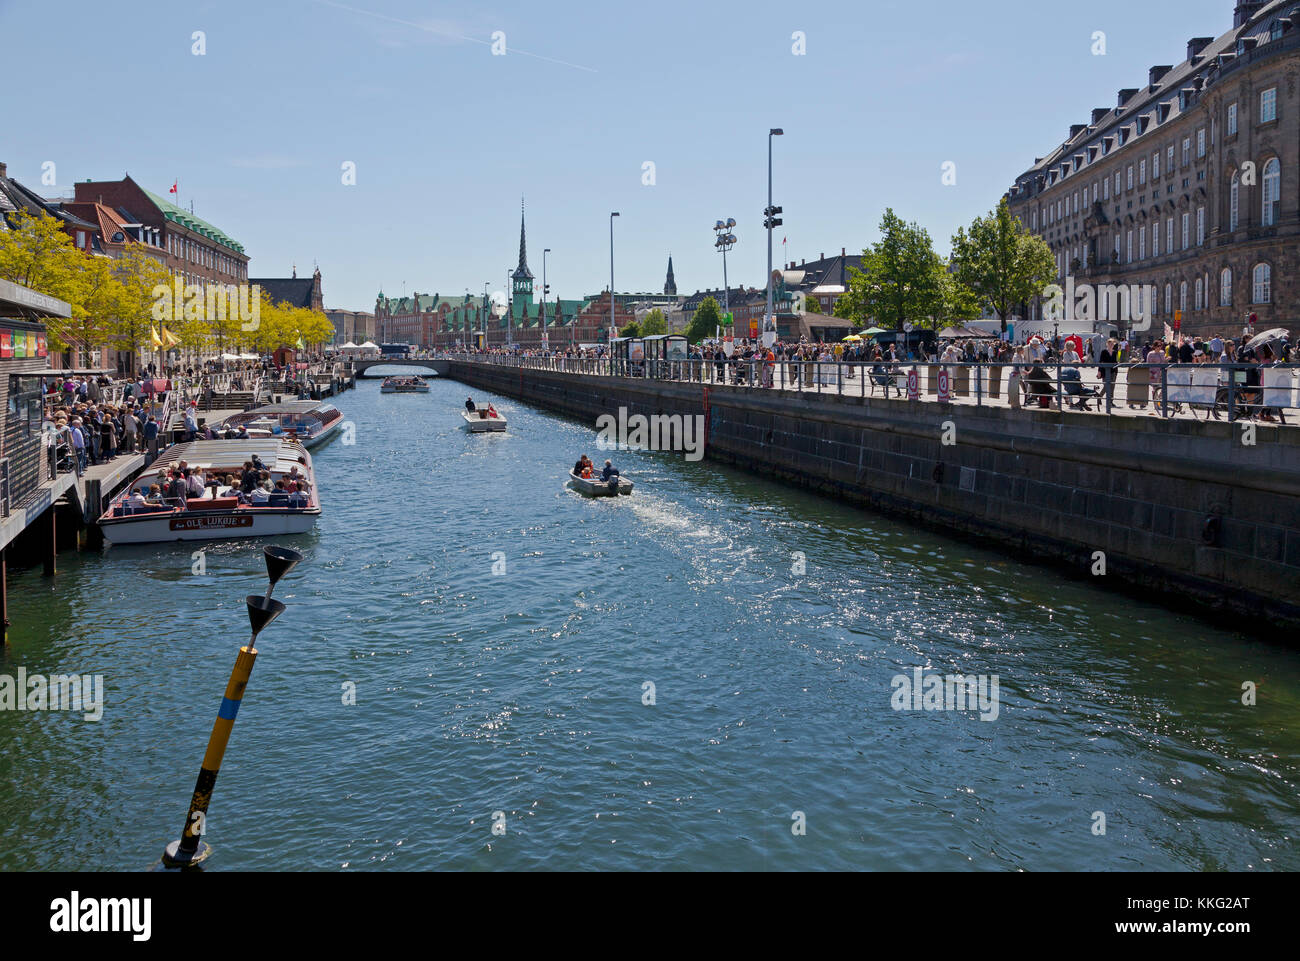 View along Slotsholmskanal in Copenhagen. Denmark. One of the canals encircling the area of Christiansborg Castle - Stock Image